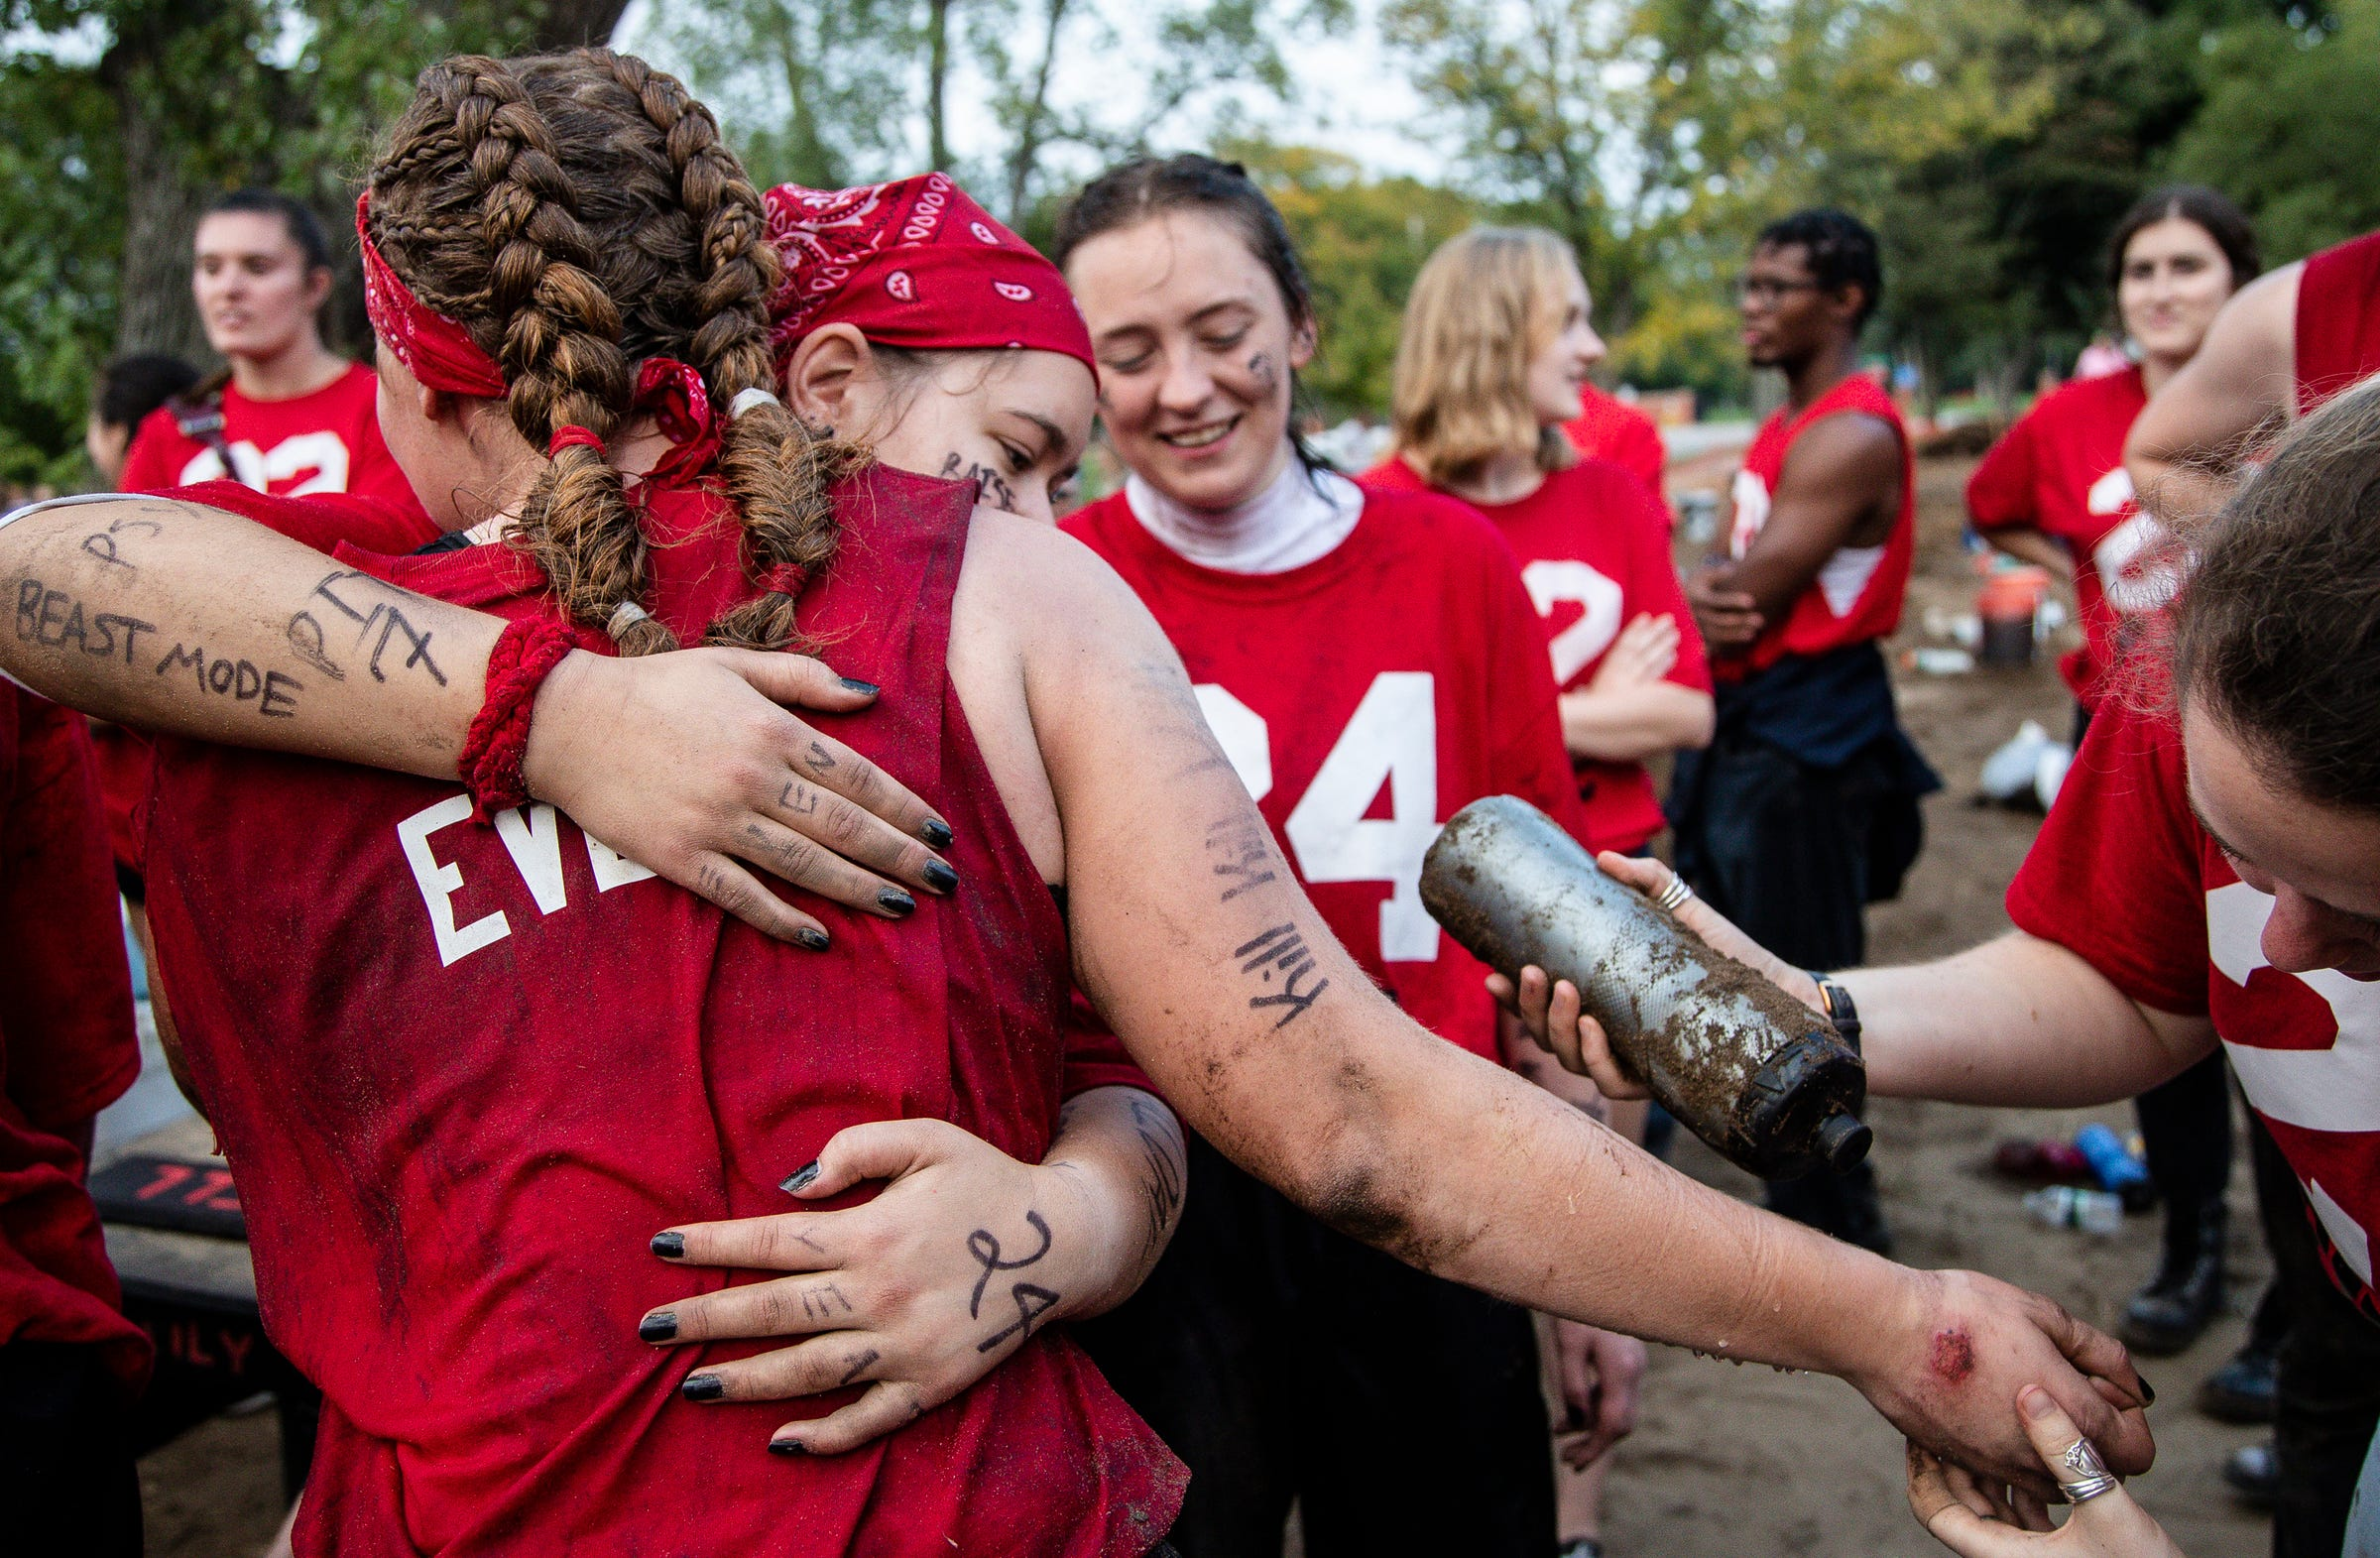 """Even year puller Lauren Tocco with a pit name """"Evel"""" is treated for the wound on her hand and congratulated by team members after defeating the odd year team at the Pull, an annual tug-of-war between the freshmen and sophomore classes at Hope College in Holland on Saturday, Oct. 2, 2021."""